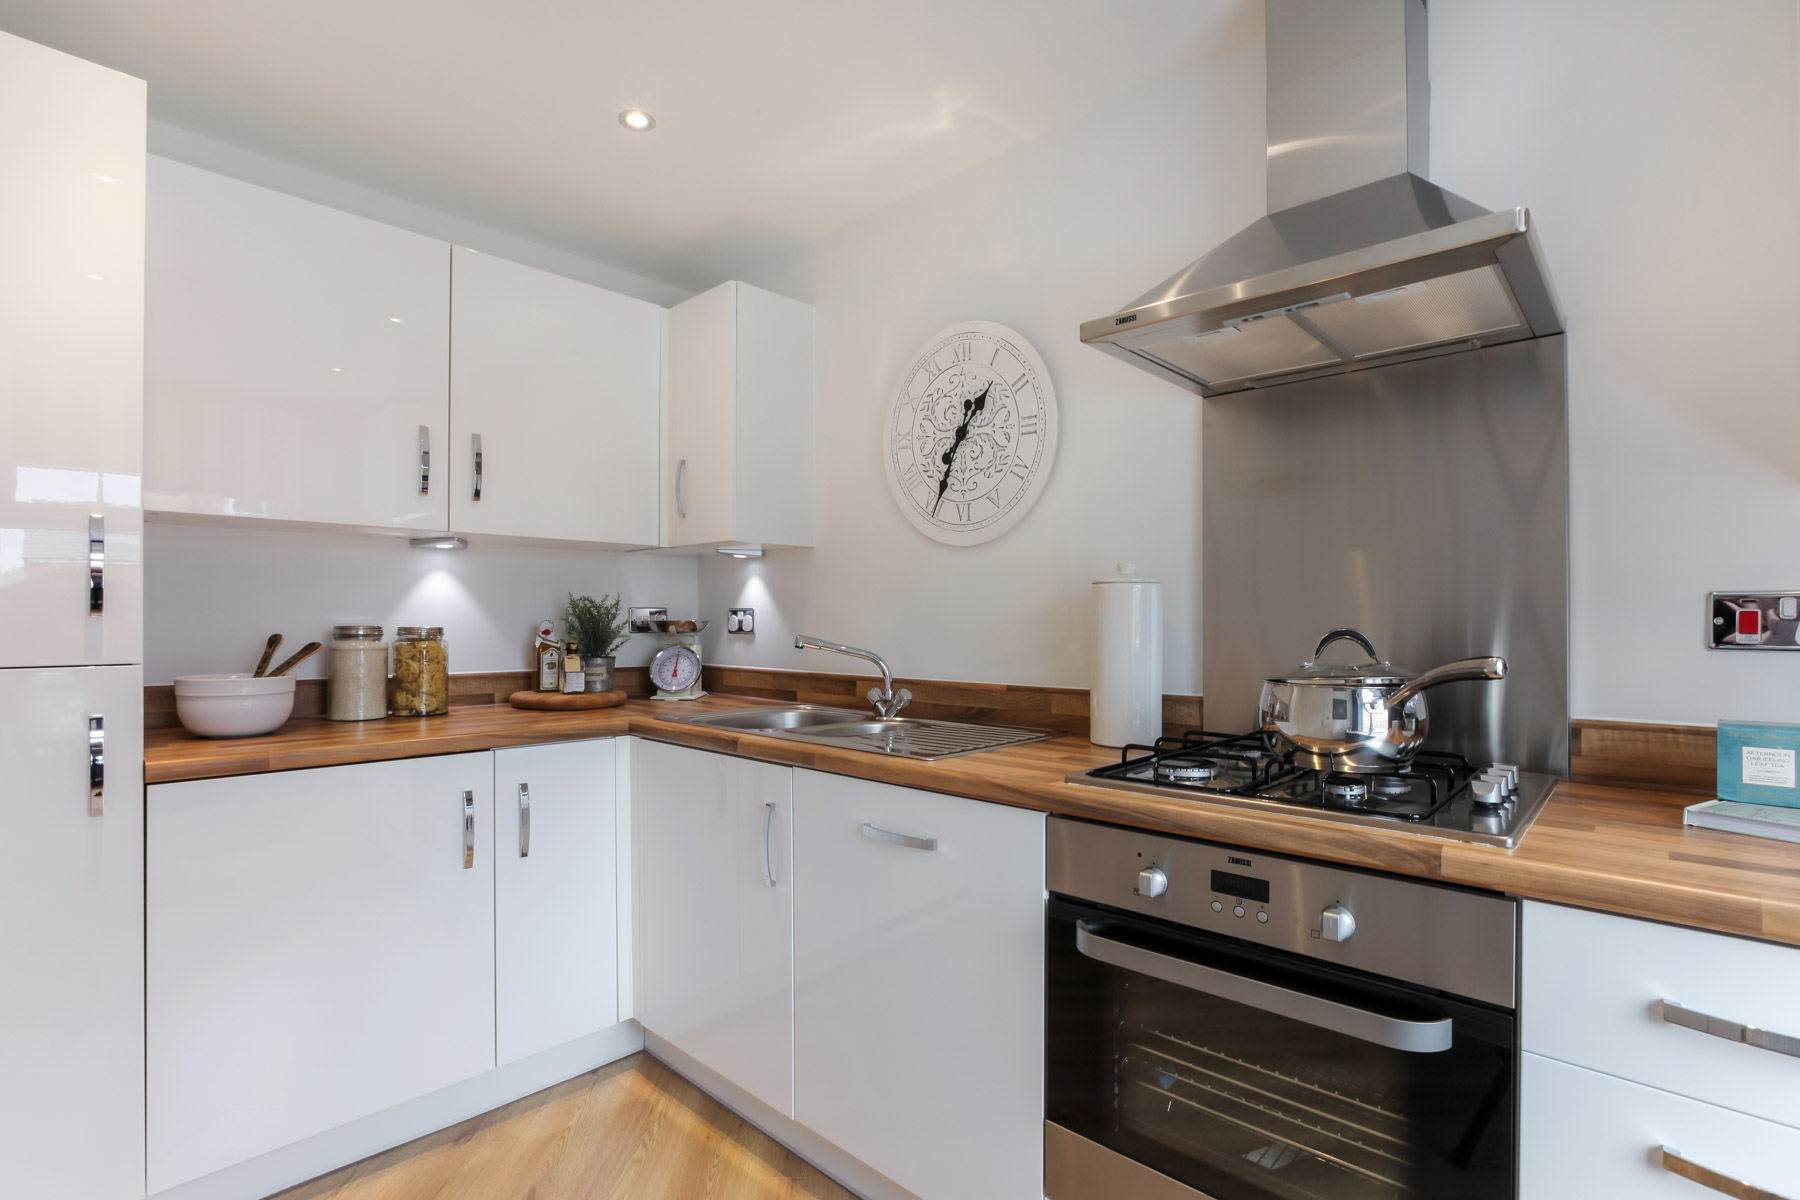 008_PW_Dadford_Kitchen